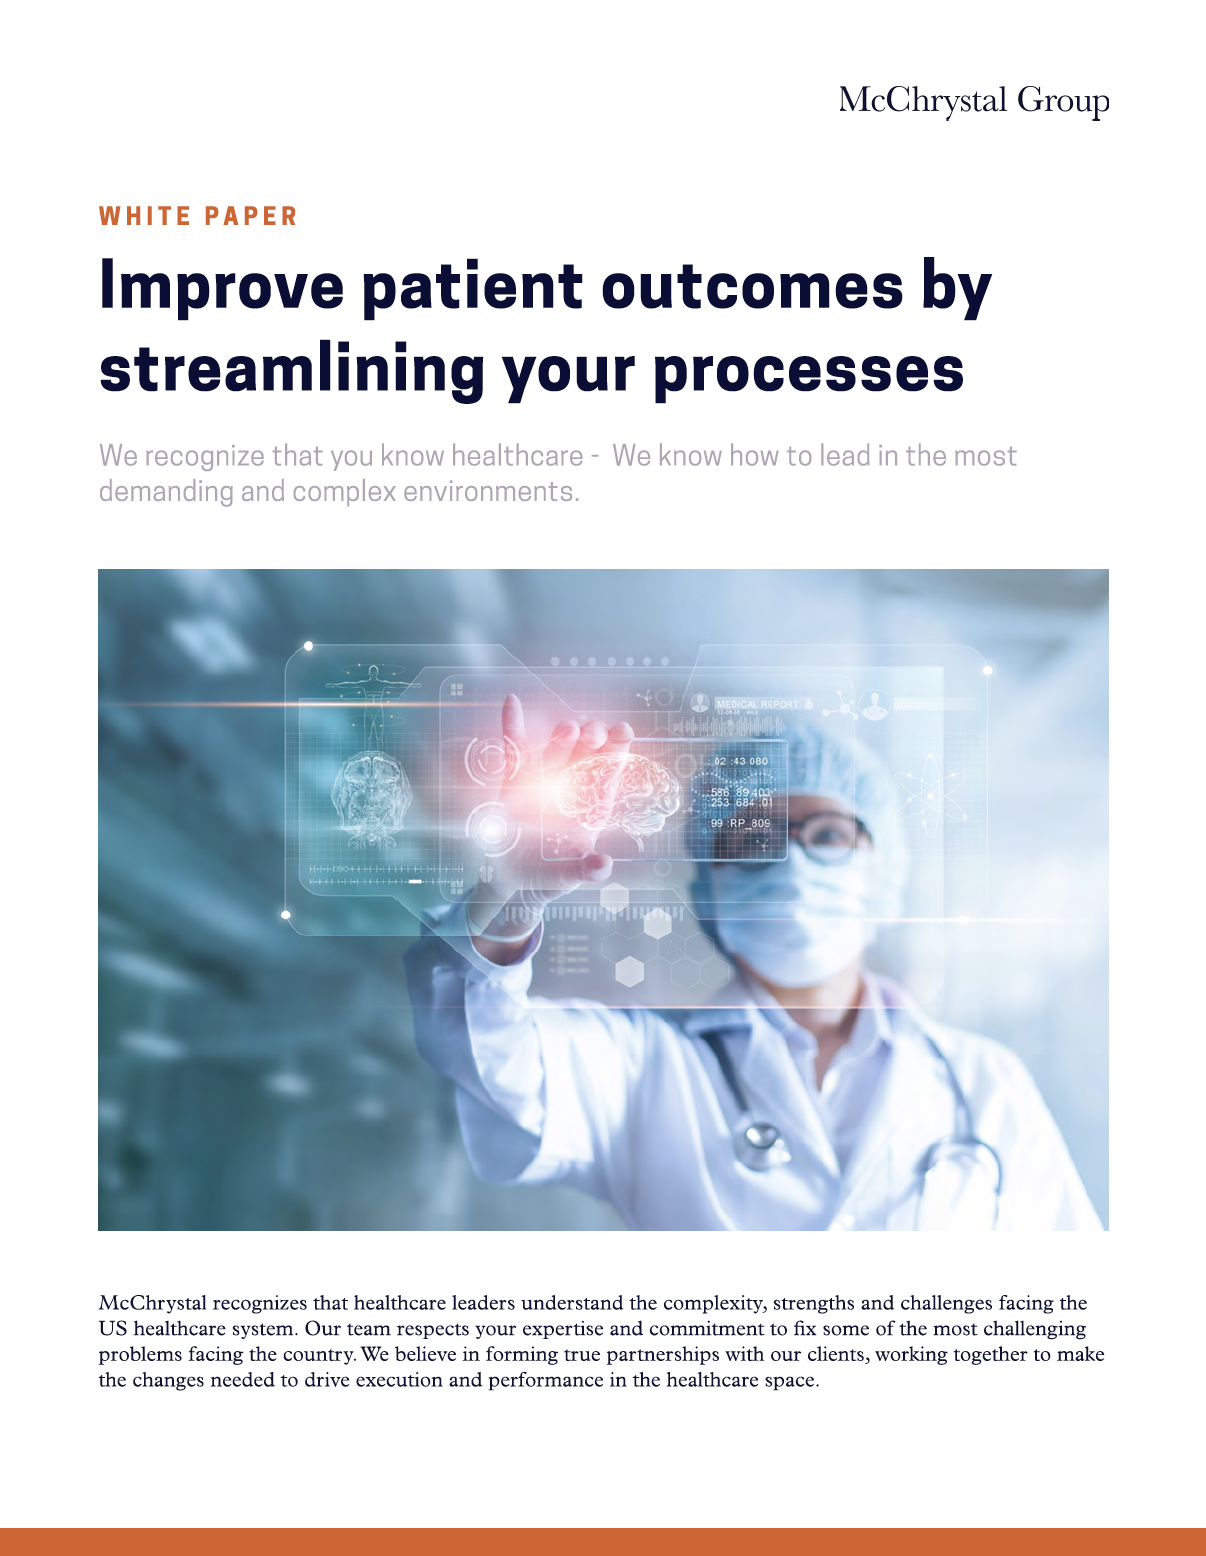 Preview of White Paper: Improve Patient Outcomes by Streamlining Your Processes